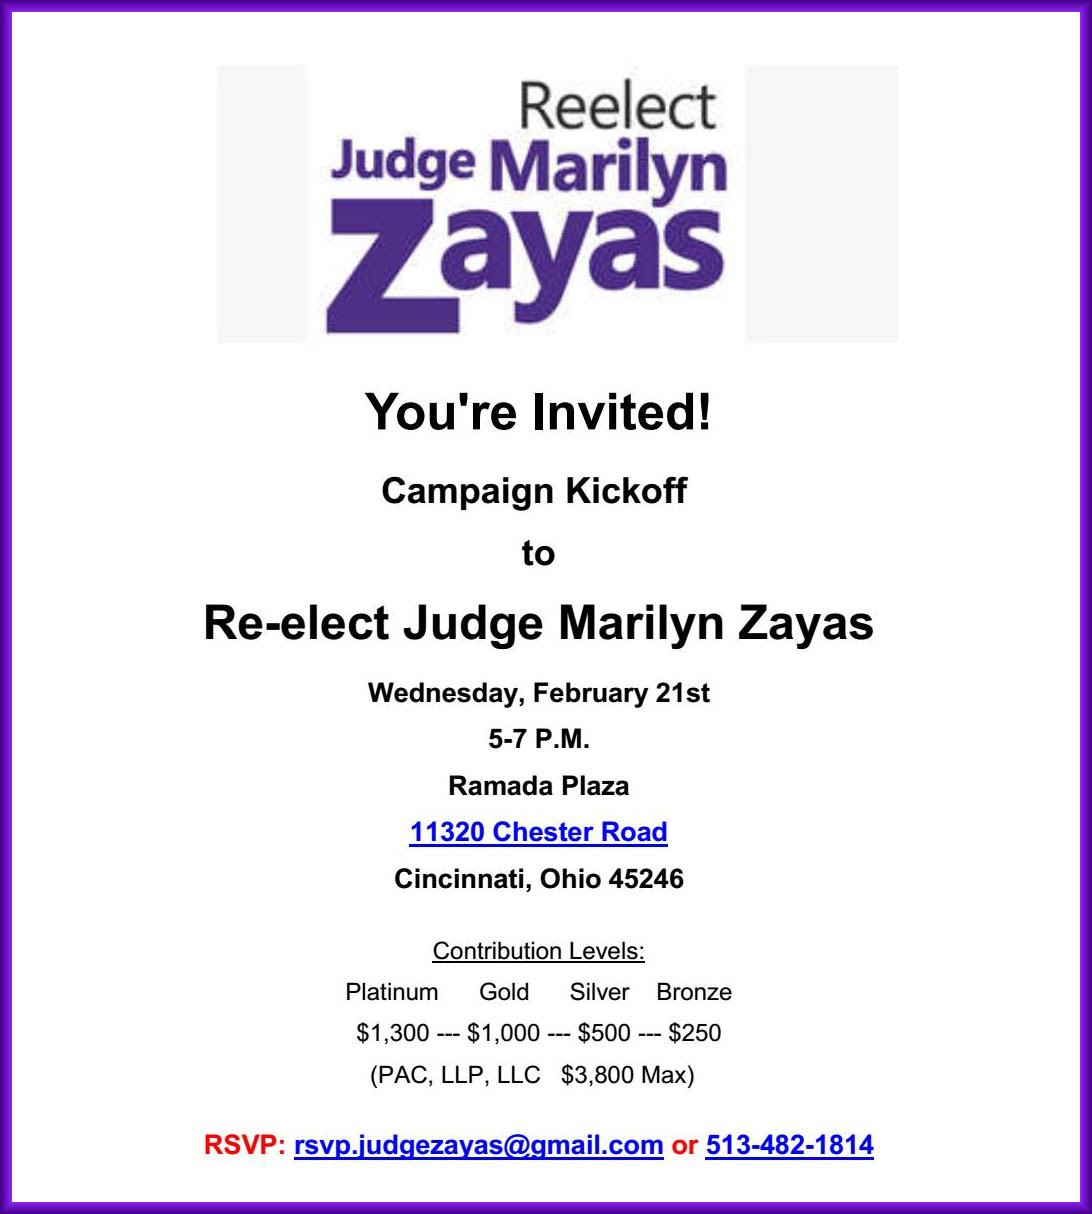 Judge-Marilyn-Zaya.jpg